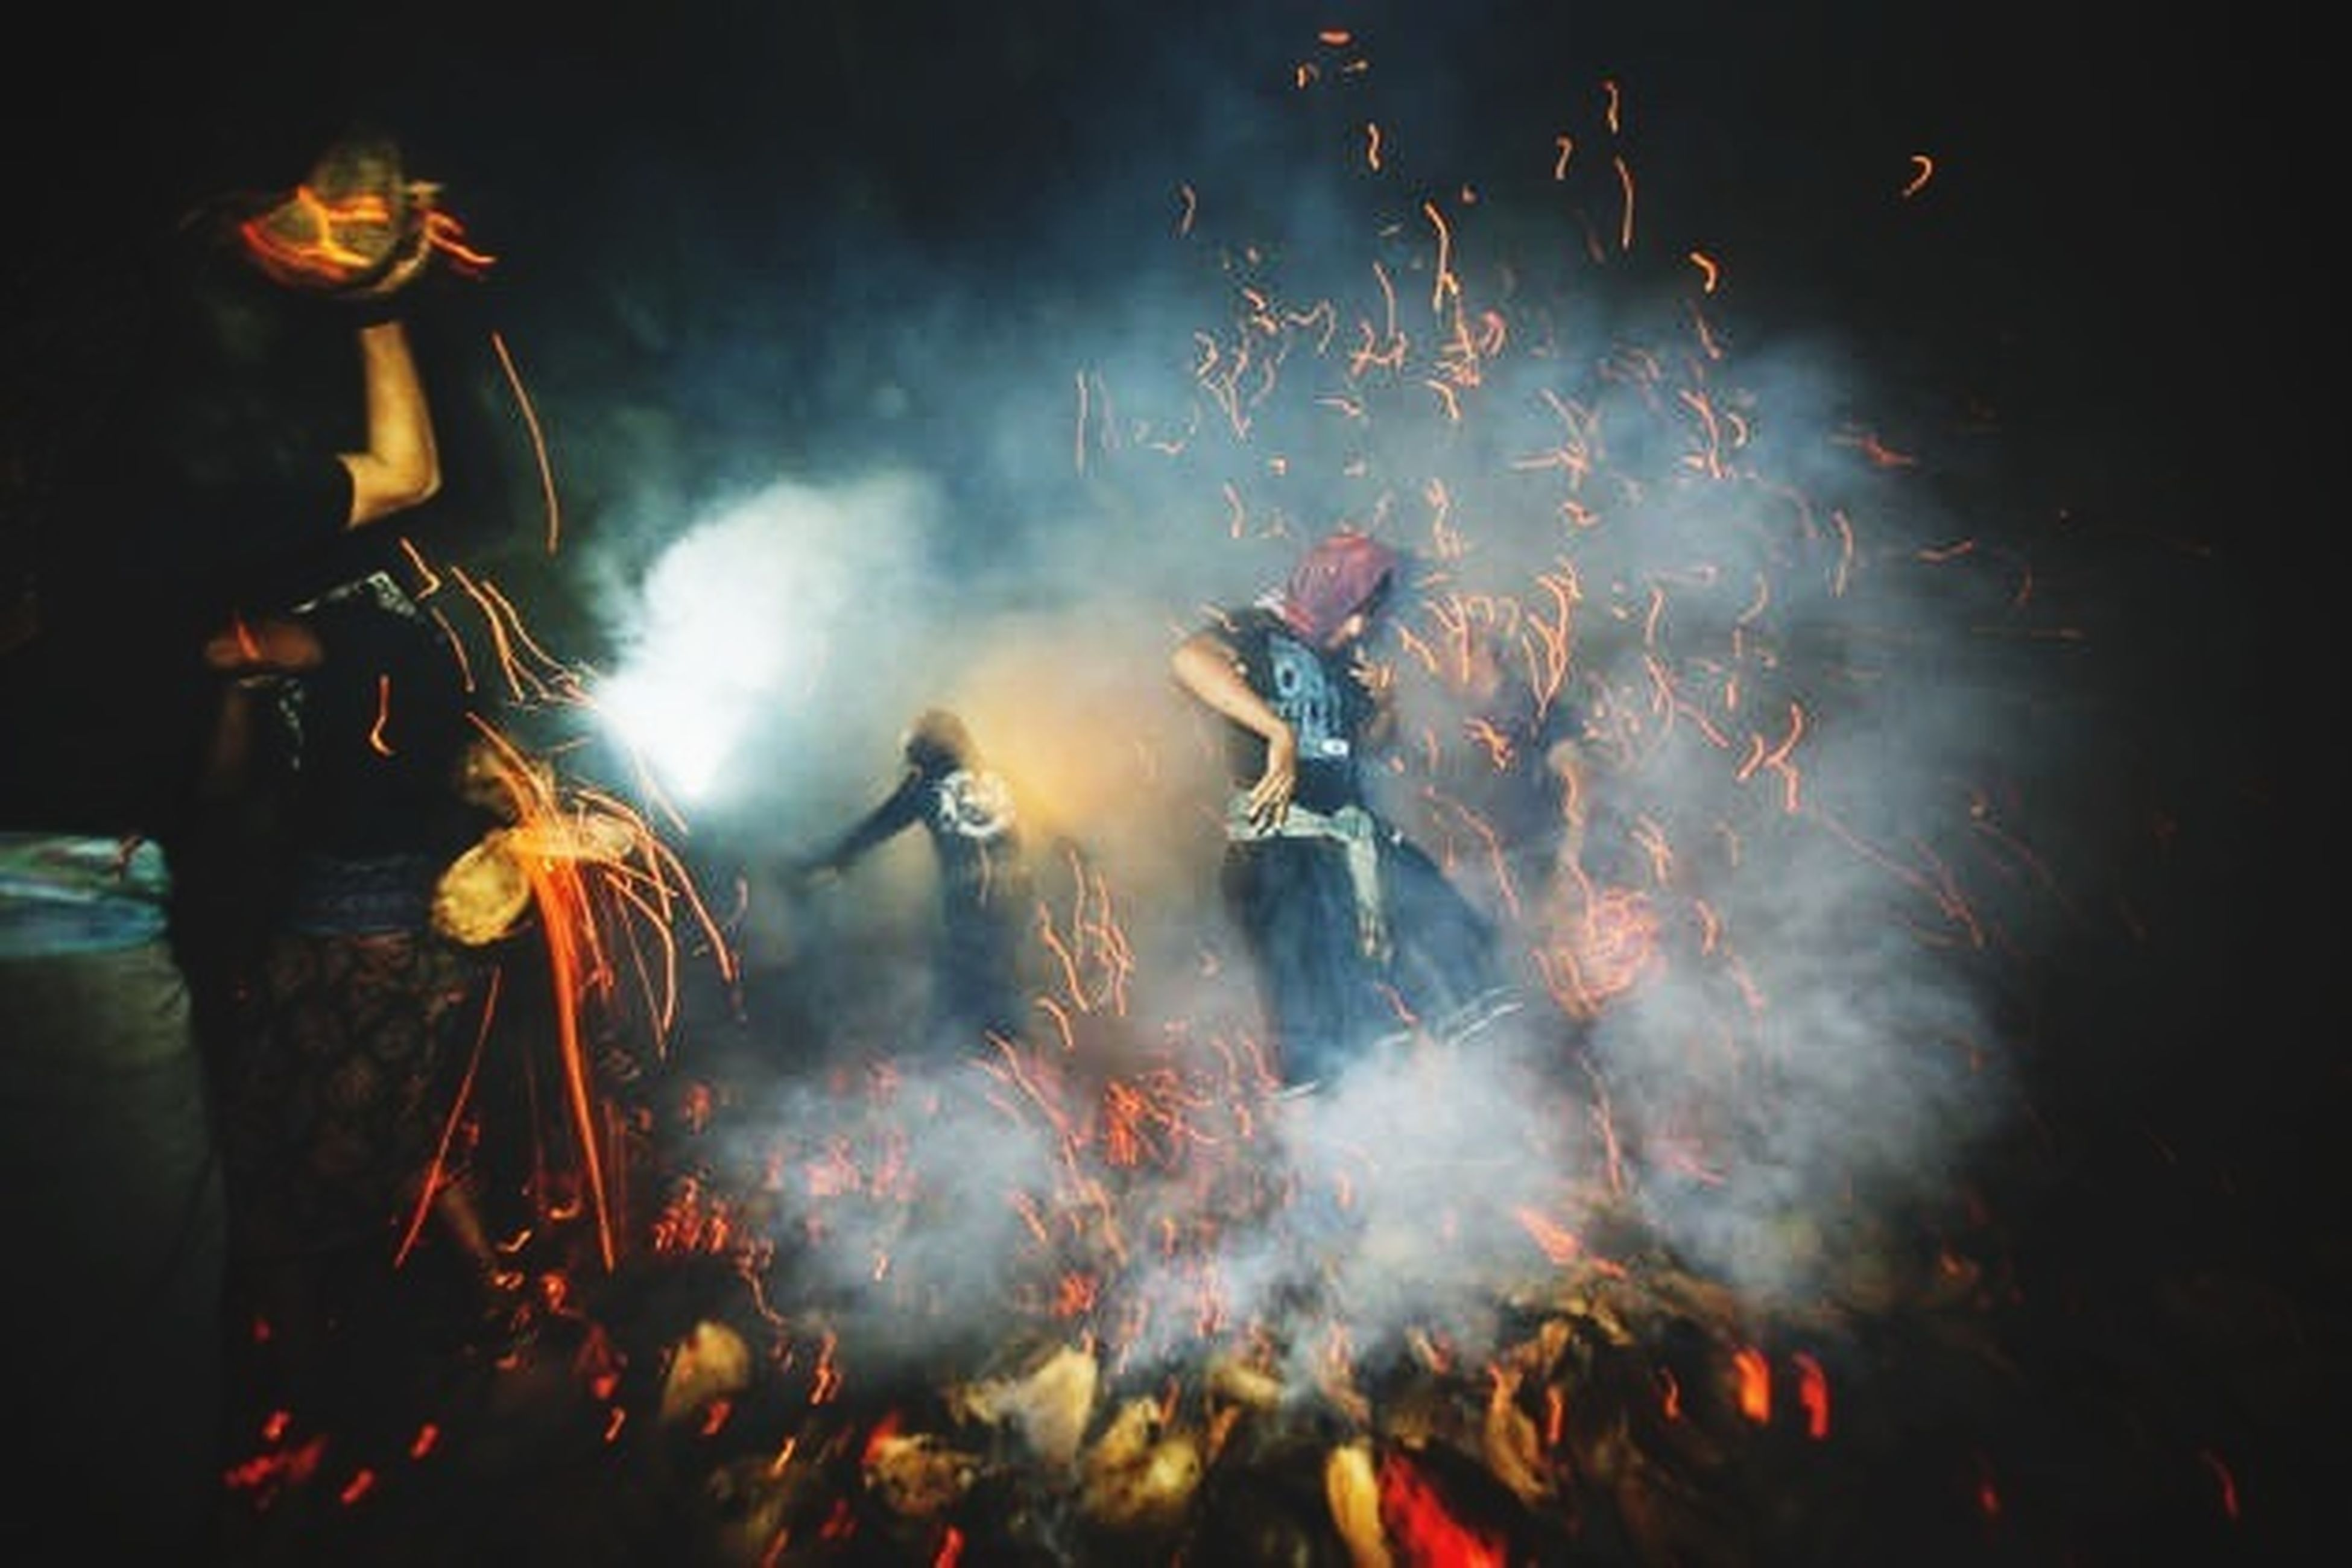 night, arts culture and entertainment, illuminated, enjoyment, event, lifestyles, leisure activity, celebration, fun, large group of people, men, motion, excitement, firework display, togetherness, sparks, crowd, glowing, performance